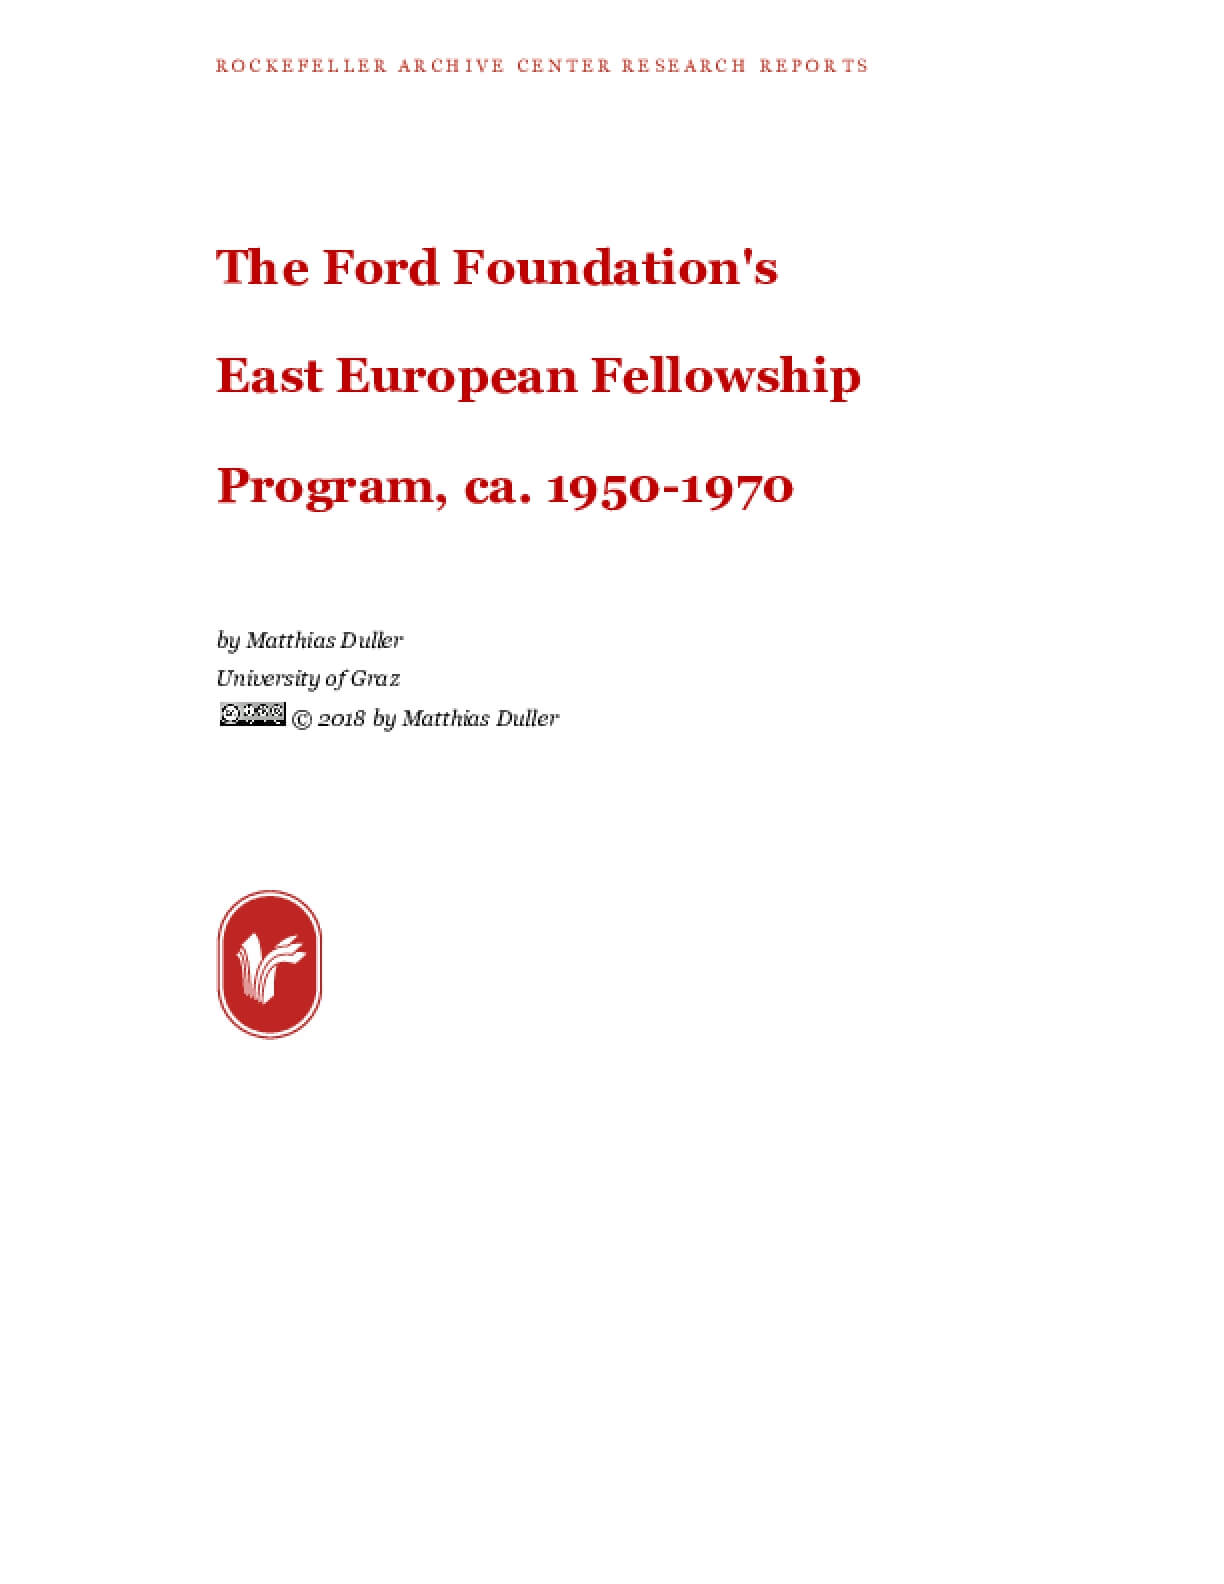 The Ford Foundation's East European Fellowship Program, ca. 1950-1970